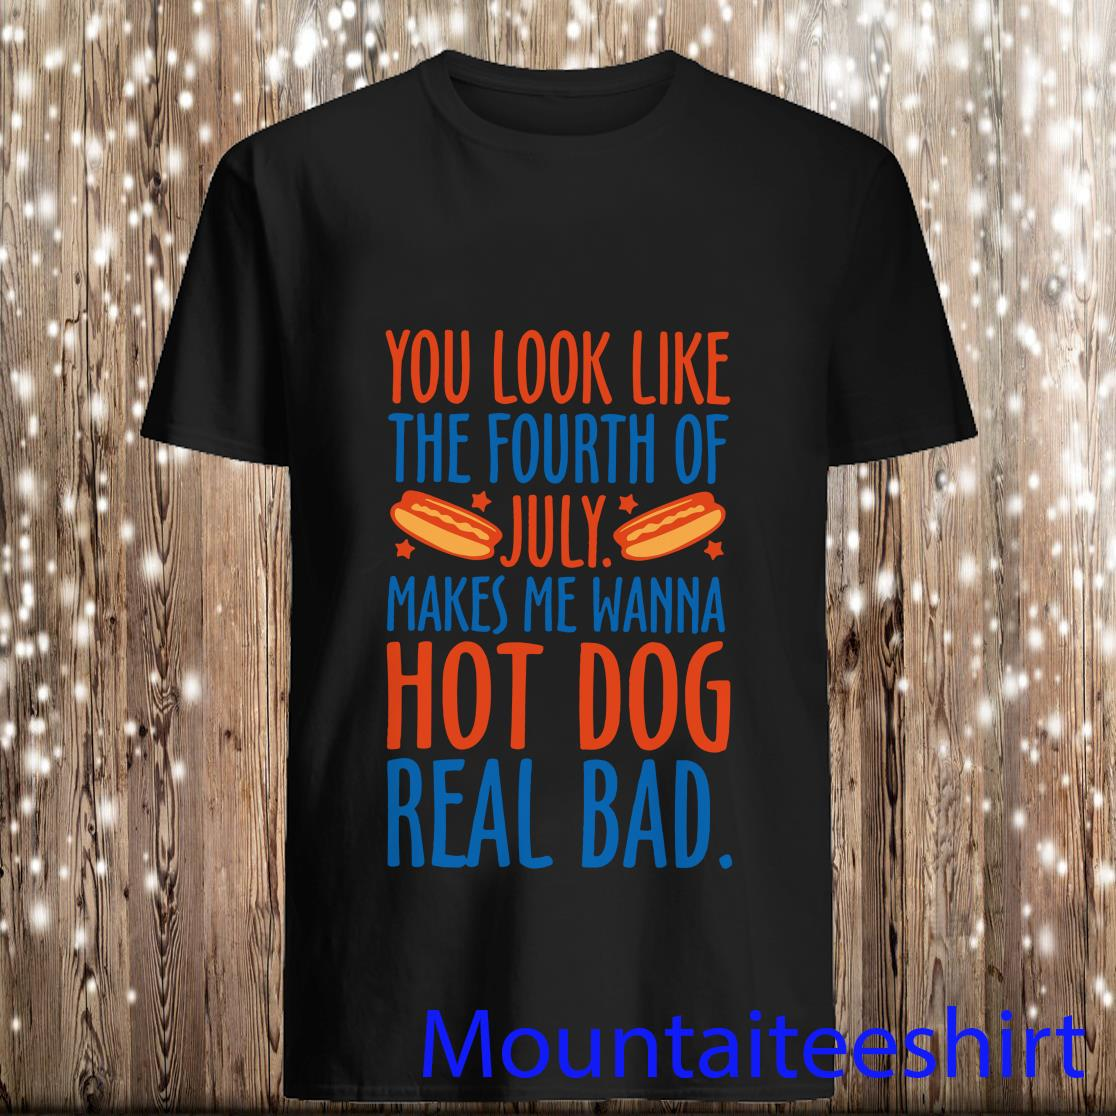 Makes Me Wanna Hot Dog Real Bad Shirt